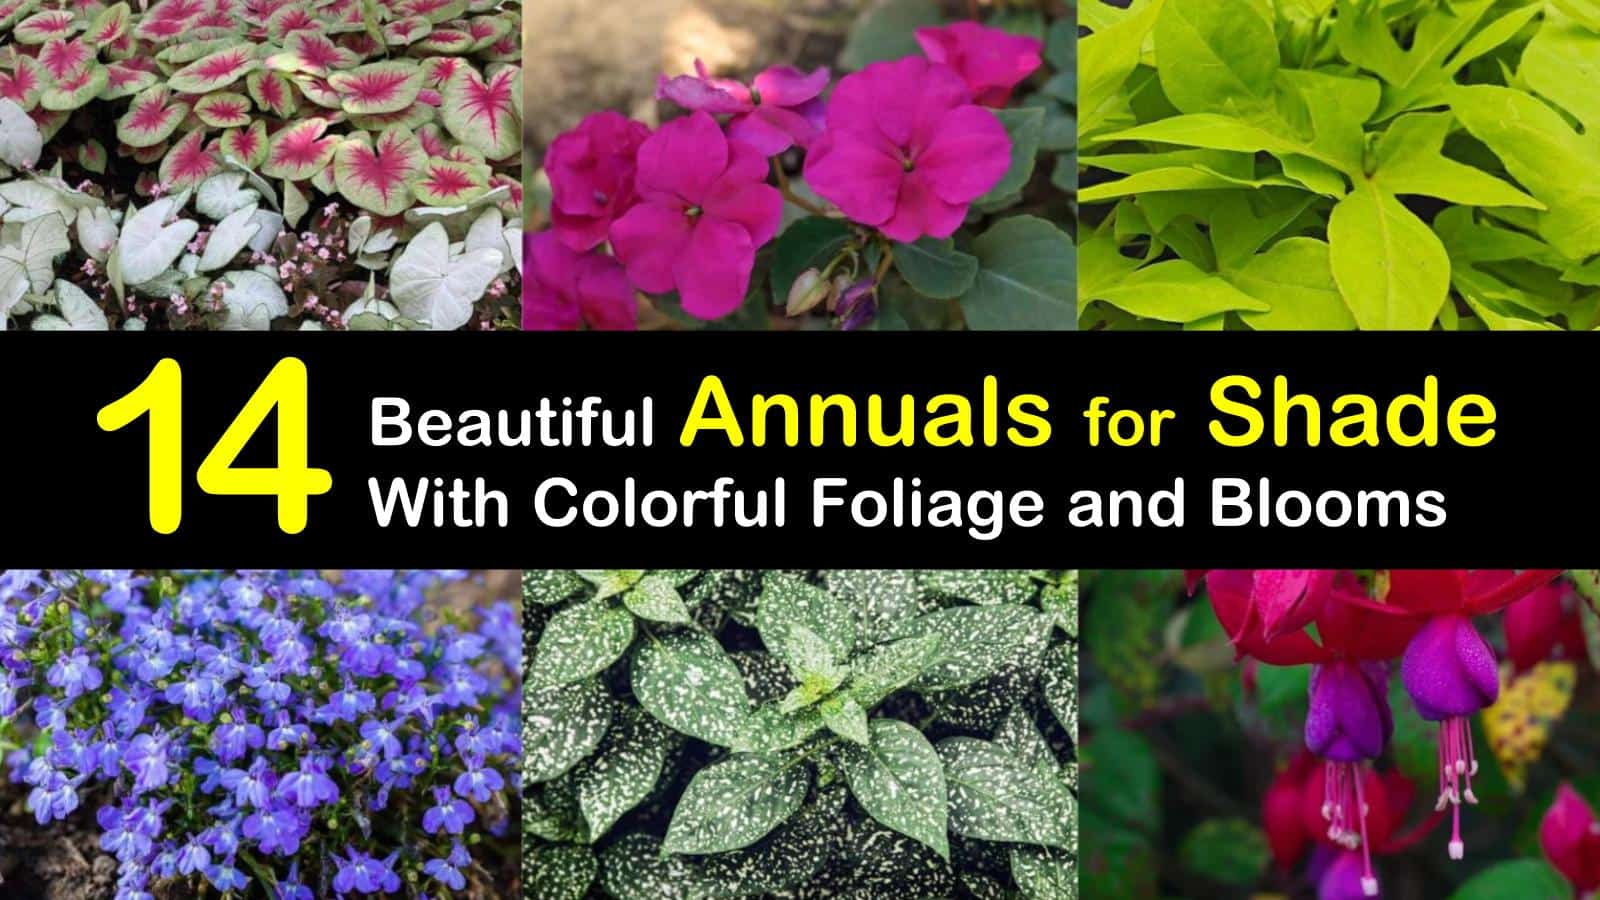 14 Beautiful Annuals For Shade With Colorful Foliage And Blooms